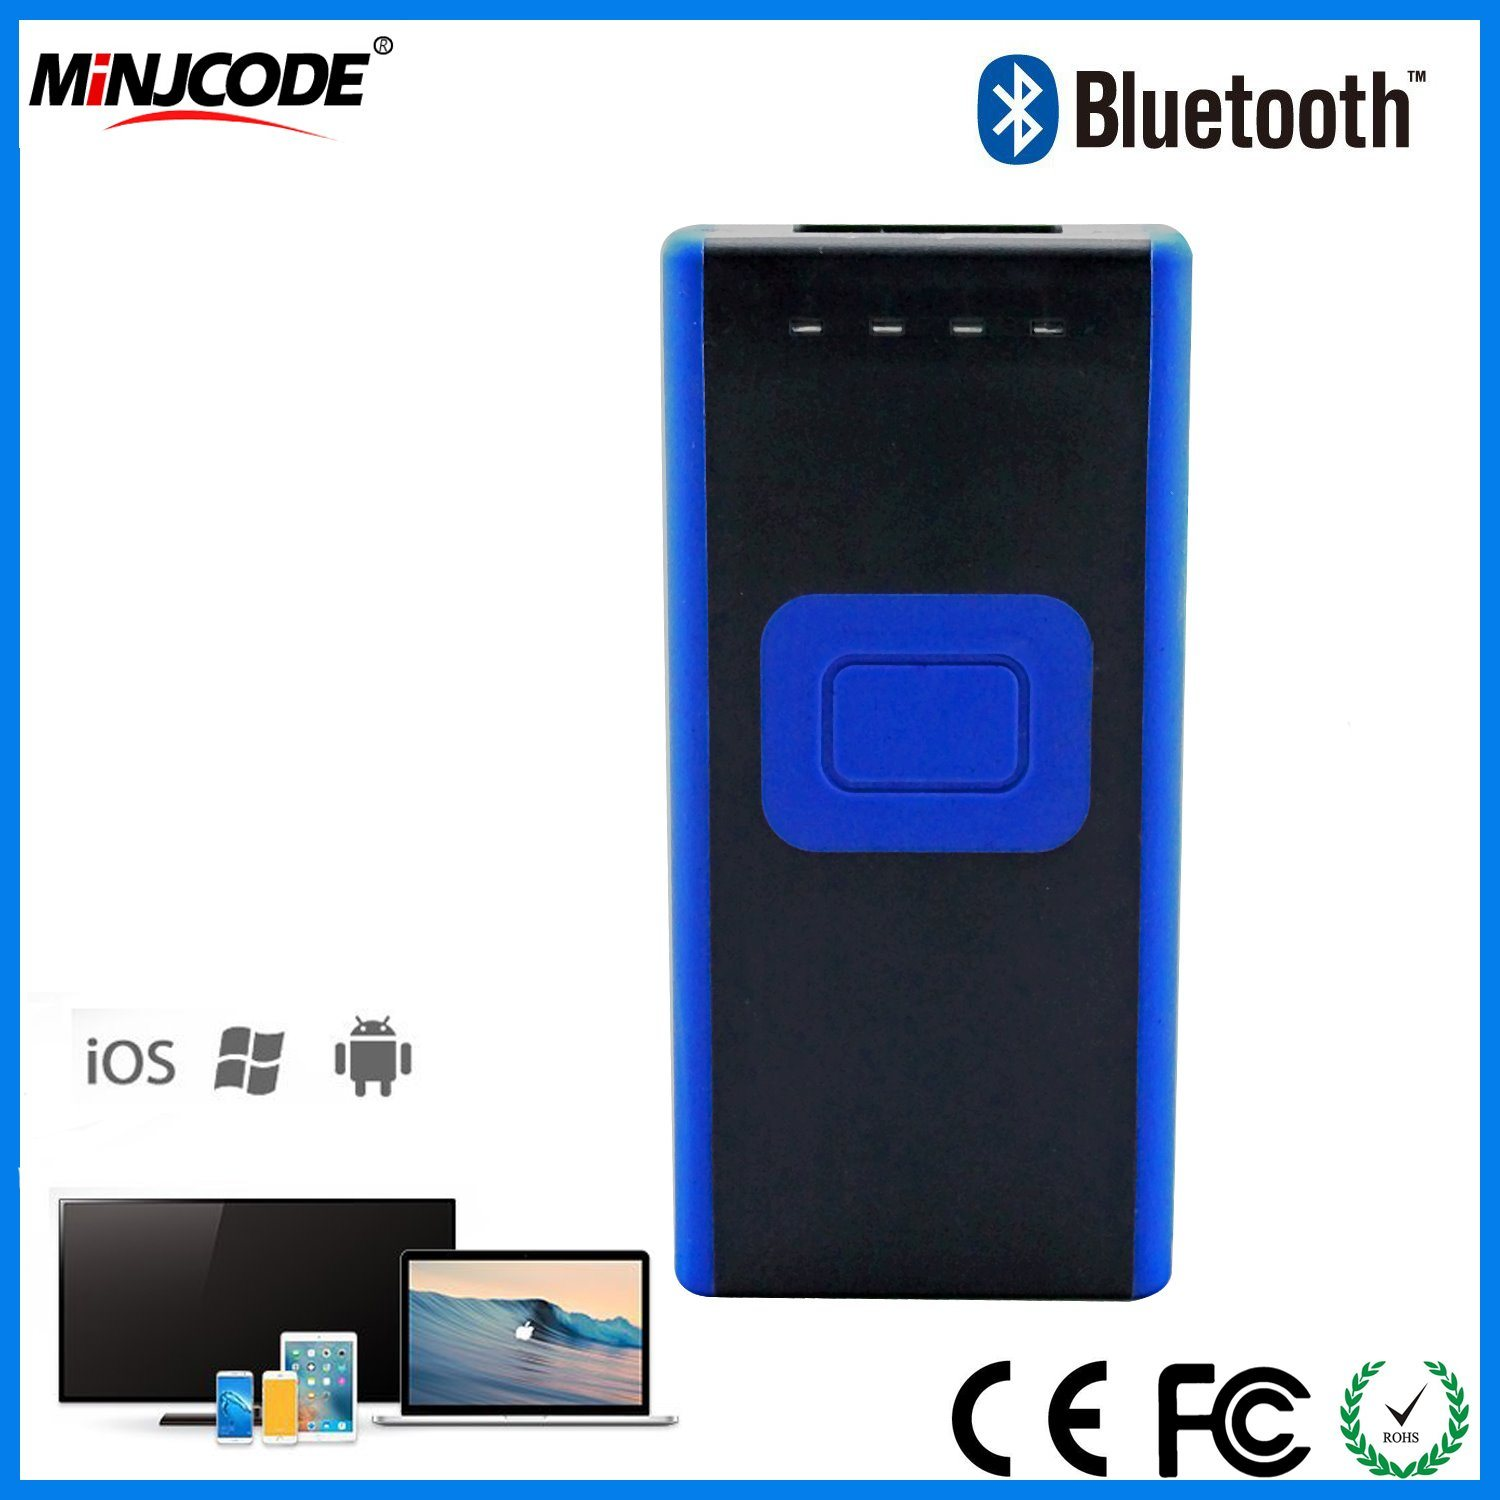 [Hot Item] 1d Bluetooth Wireless Barcode Scanner, Best Barcode Scanner  Price, Barcode Scanner Reader, Barcode Scanner for iPad, Mj2860